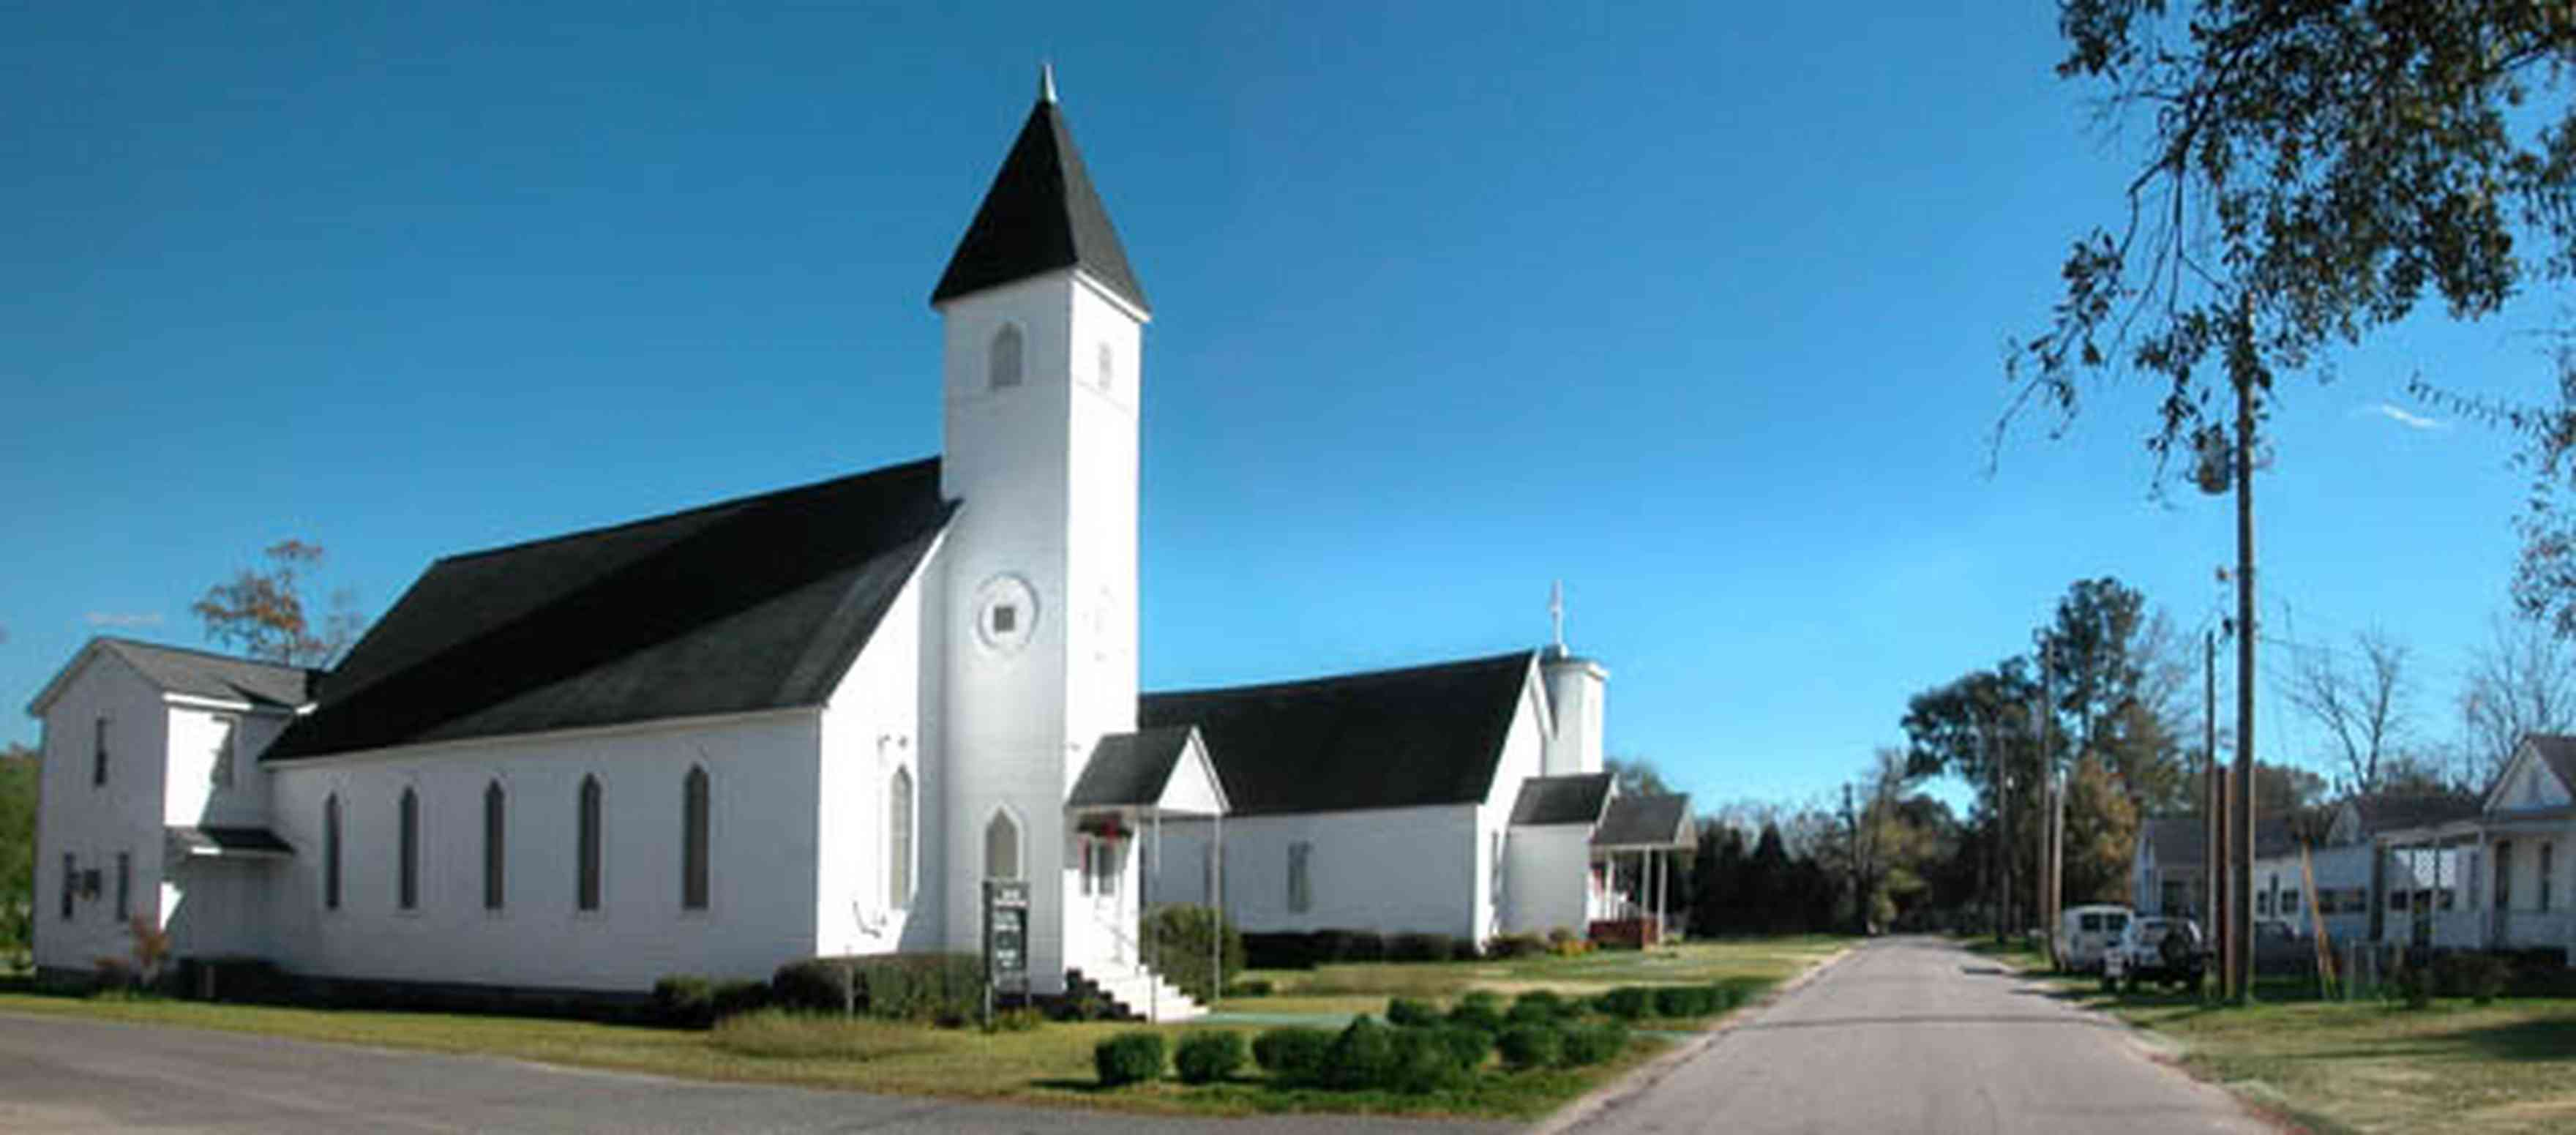 Century:-First-Baptist-Church_01.jpg:  church, steeple, cross, small town two-lane street,